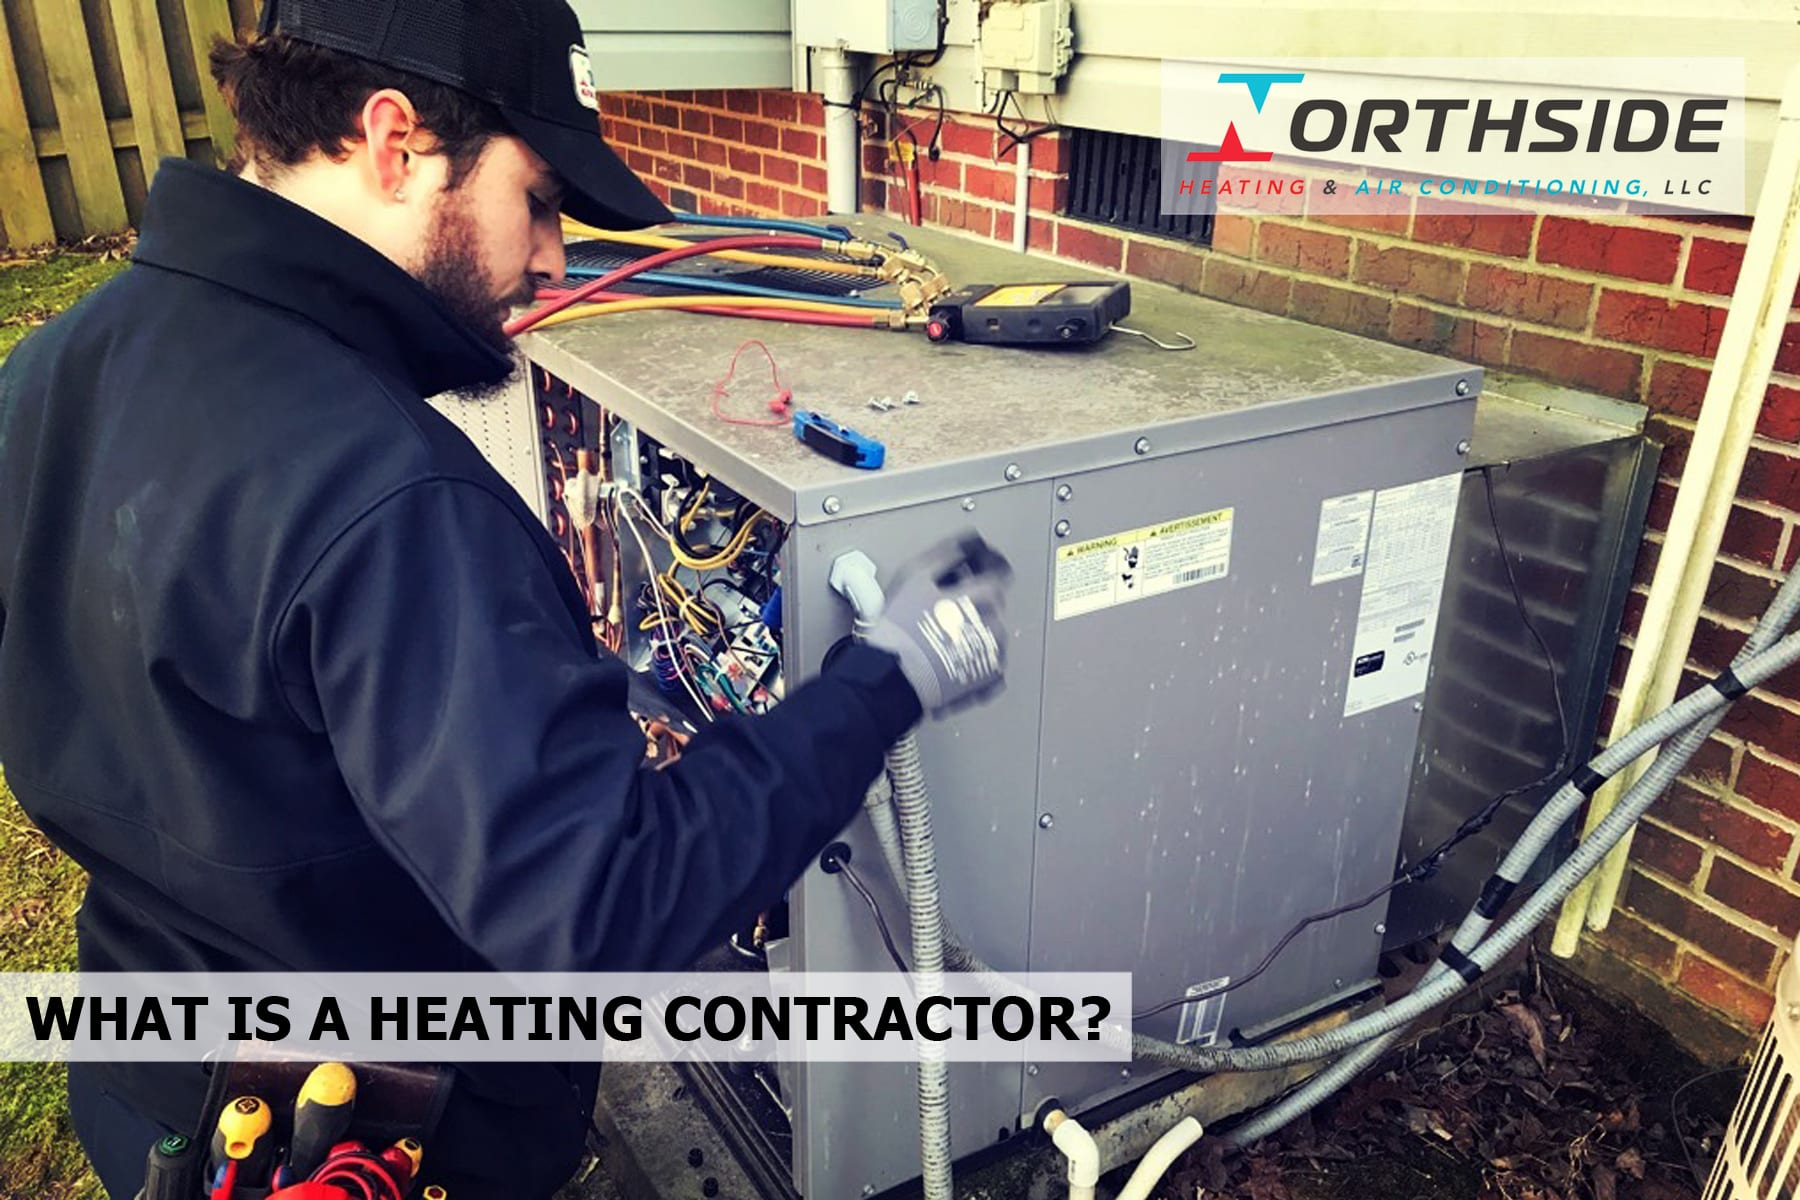 WHAT IS A HEATING CONTRACTOR